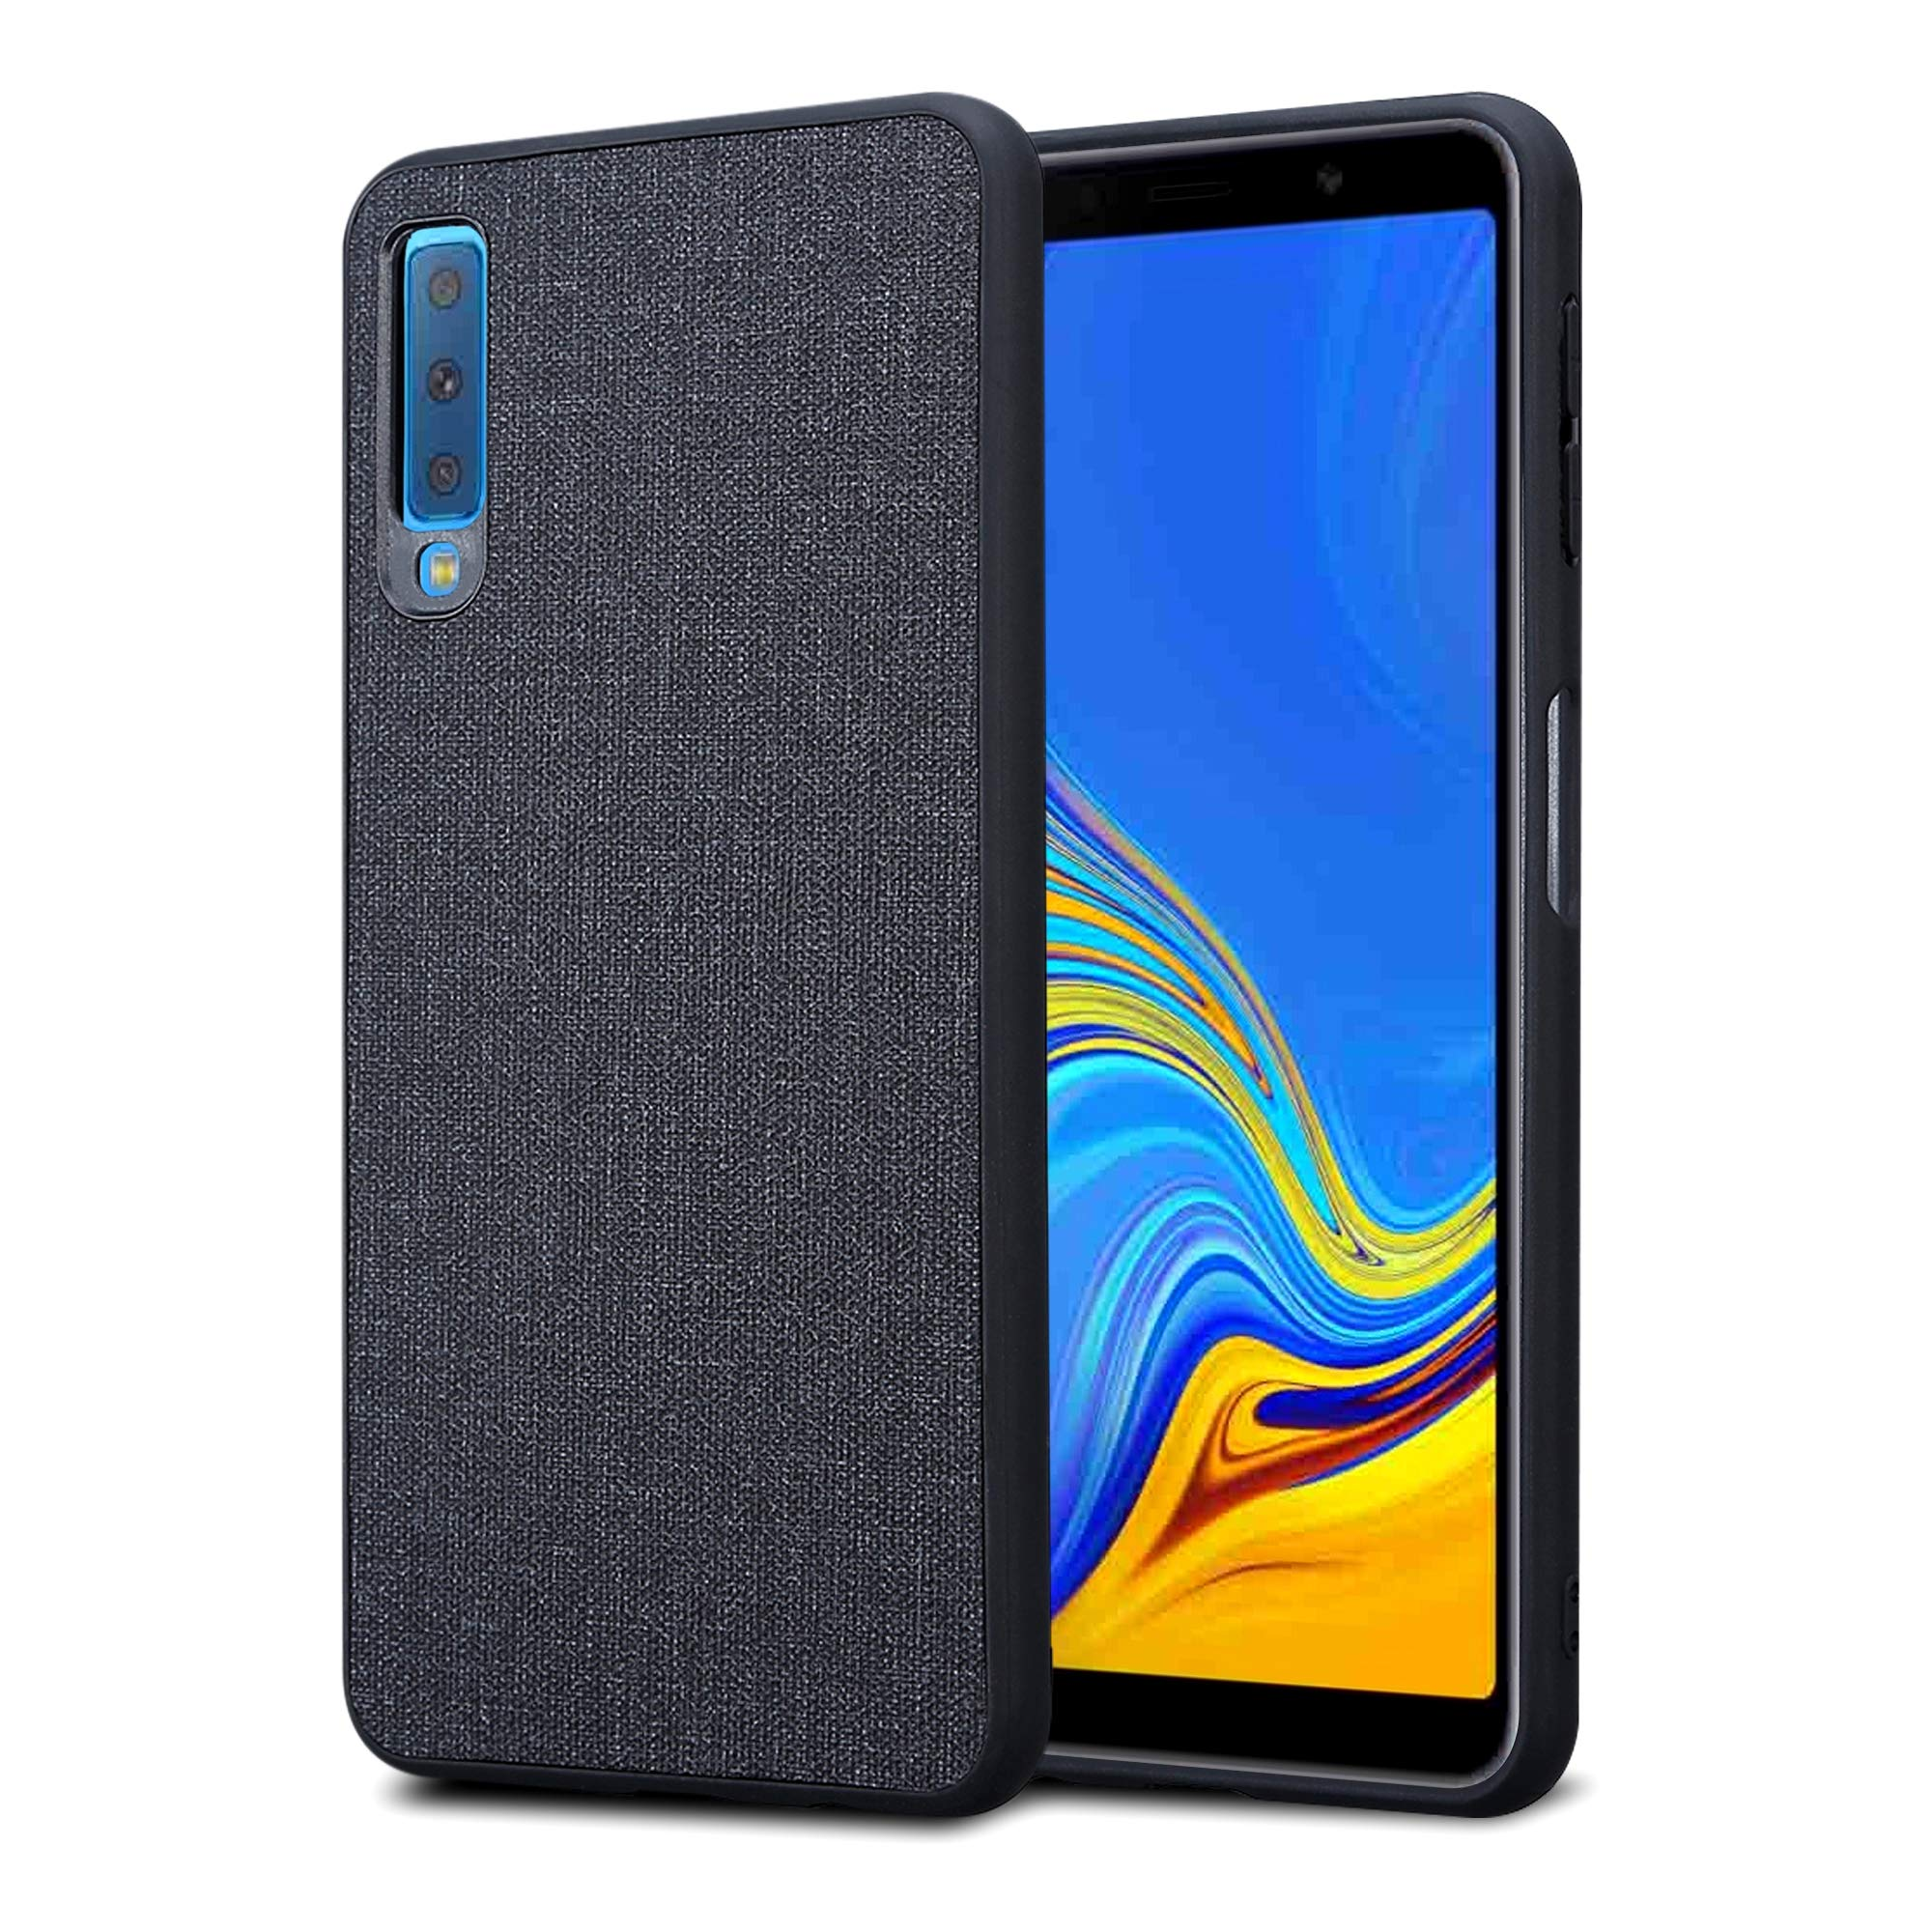 Kit Me Out World Fabric Series Case Designed for Samsung Galaxy A7 (2018), Hard (PC) Back Covered in Fabric Cloth, Black Flexible TPU Bumper Protection Shockproof Case Cover (Black)